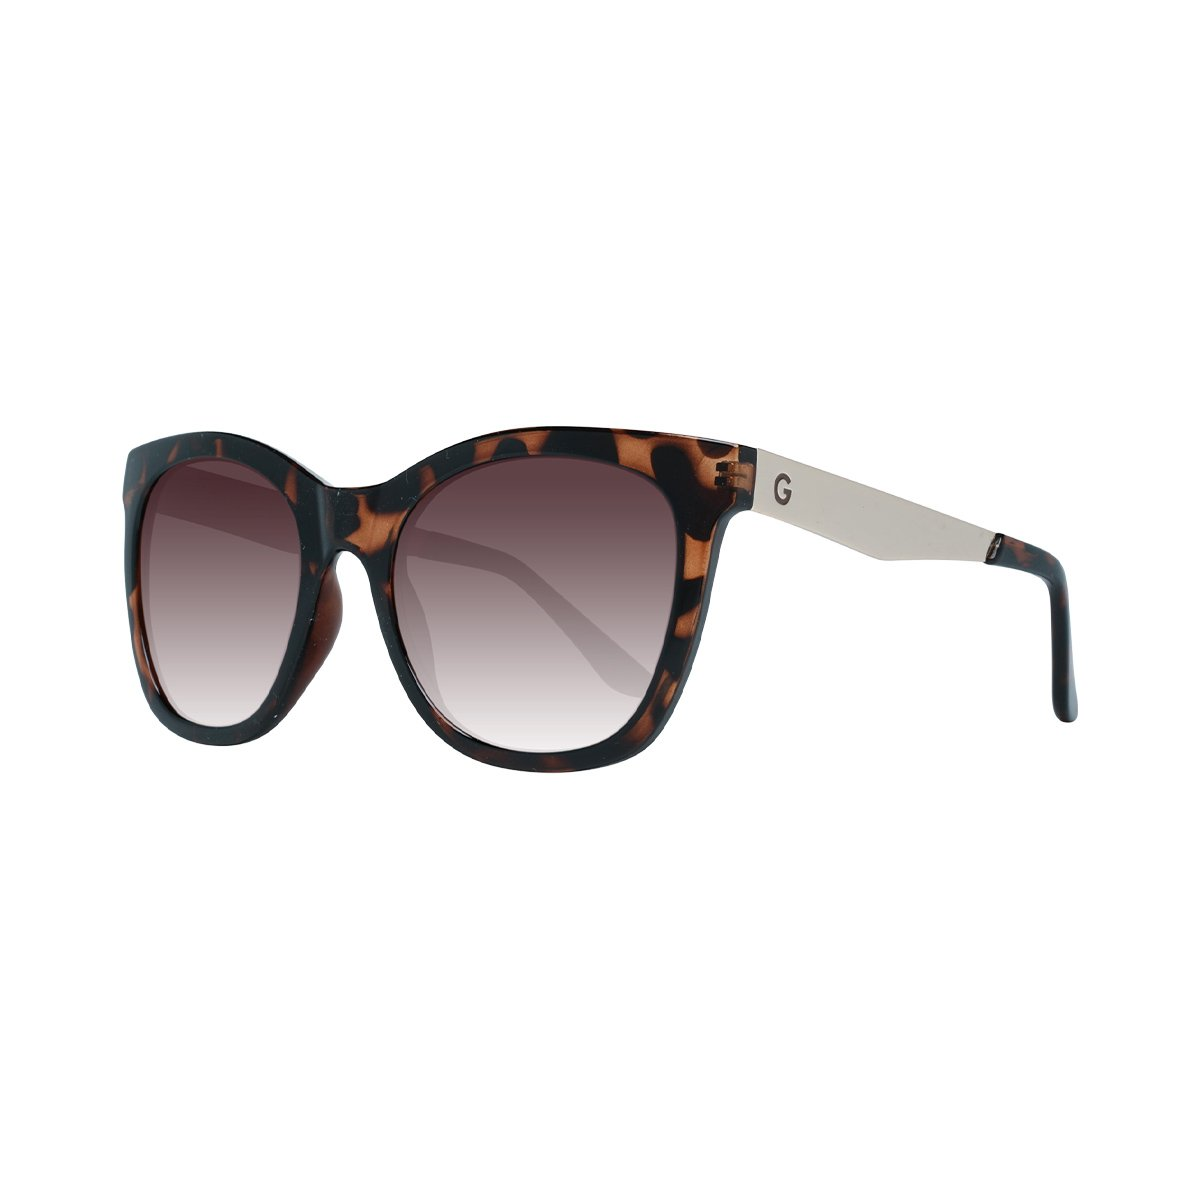 Guess GG115552F54 Ladies Sunglasses